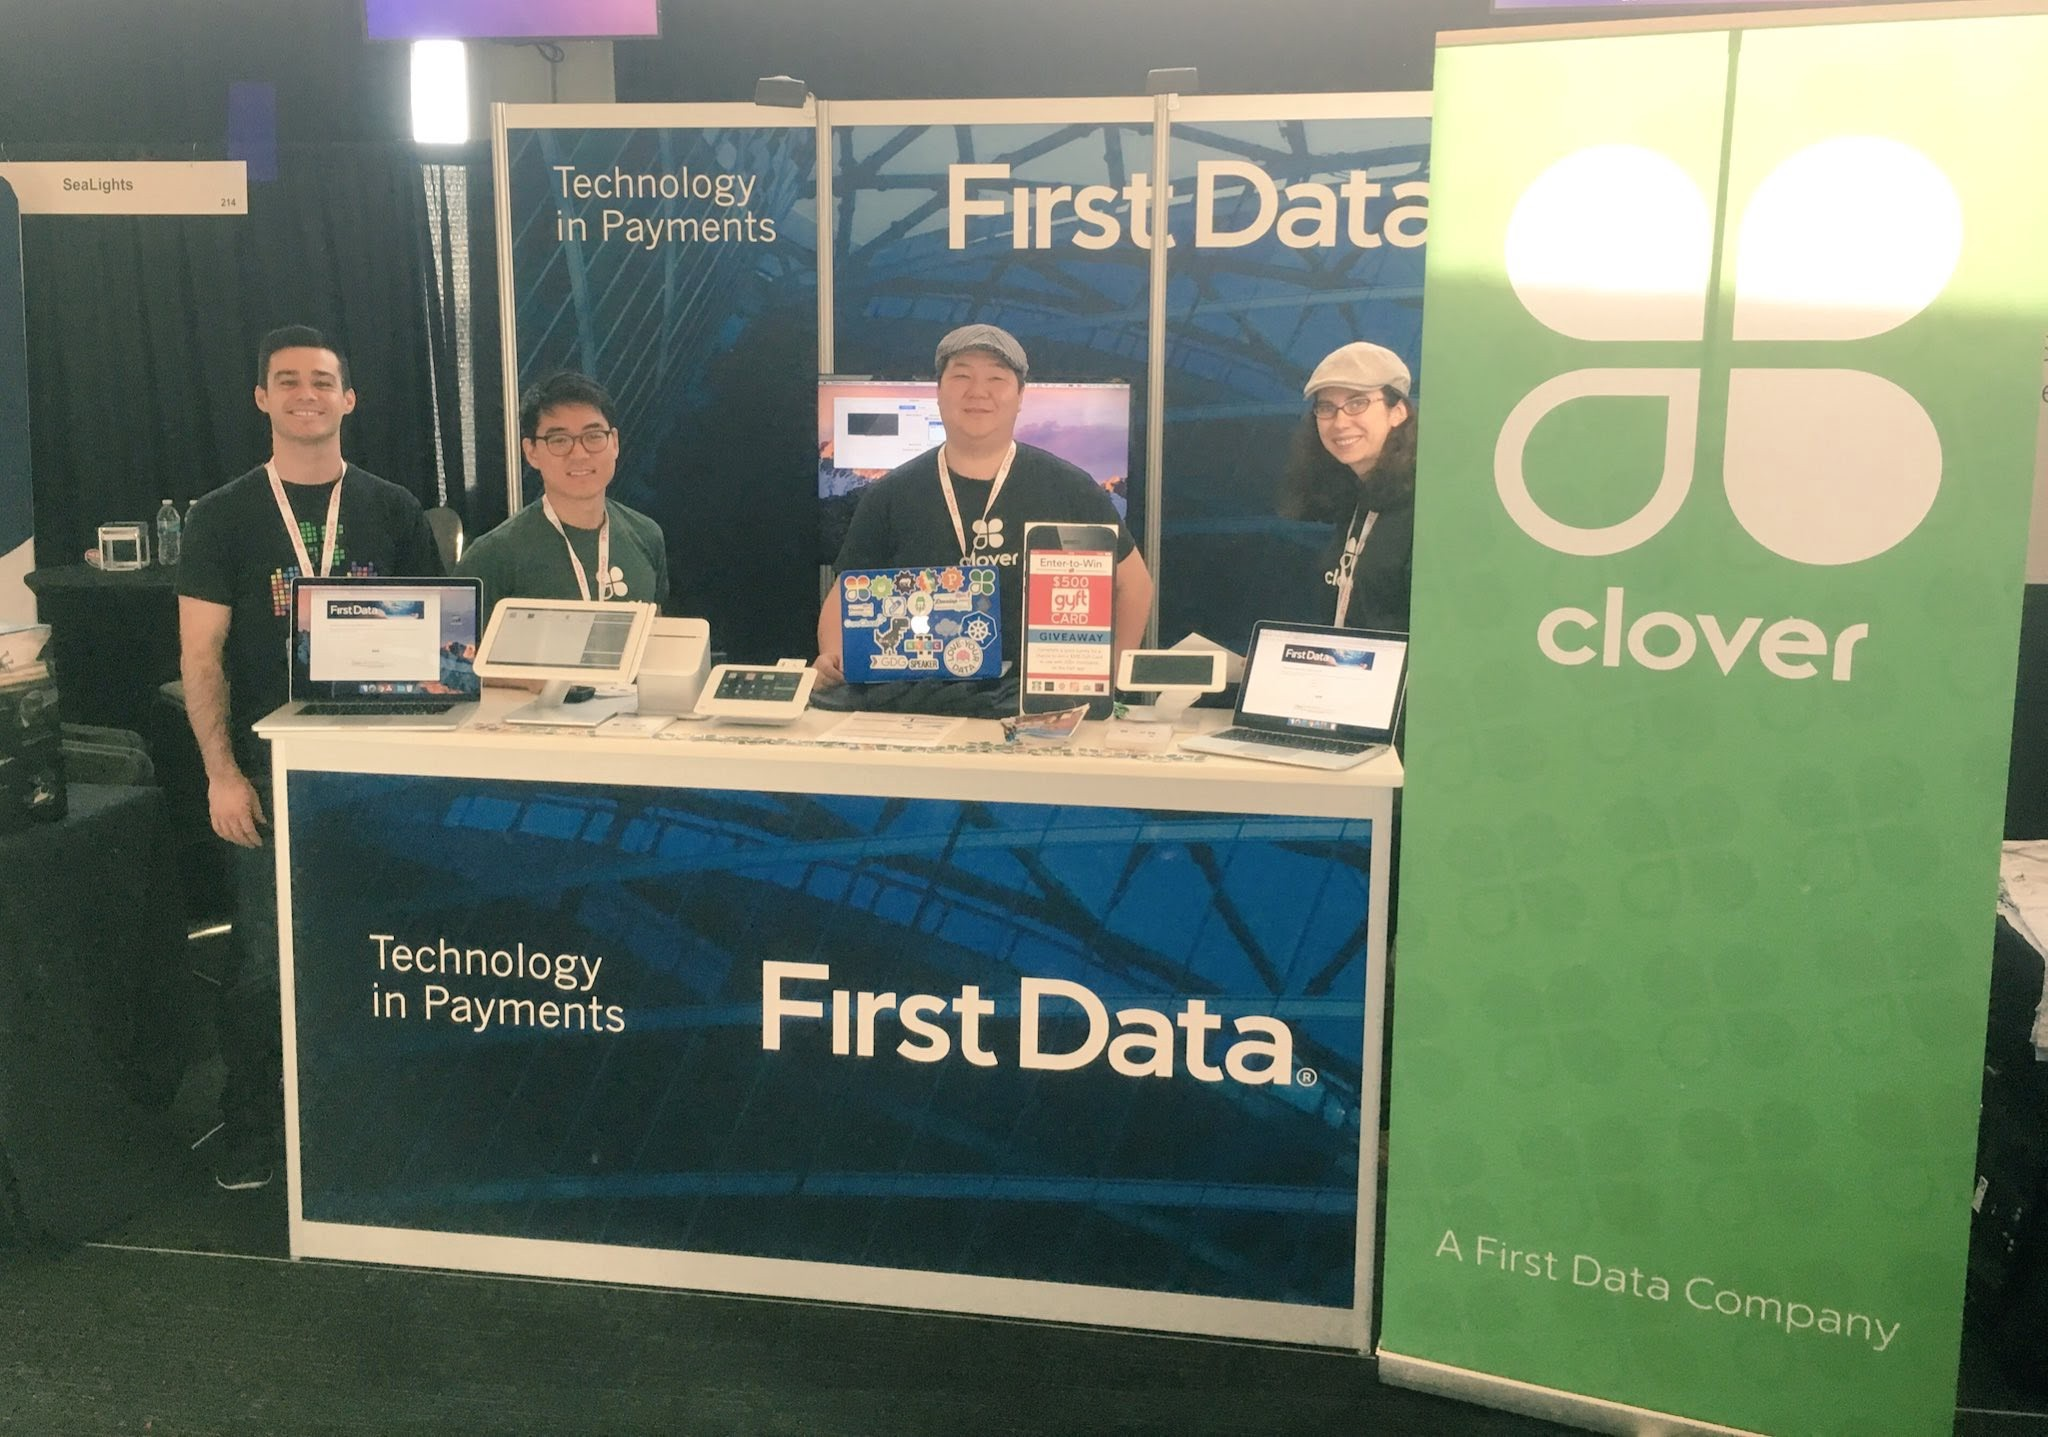 Clover at DeveloperWeek 2017 - Clover Platform Blog - Medium